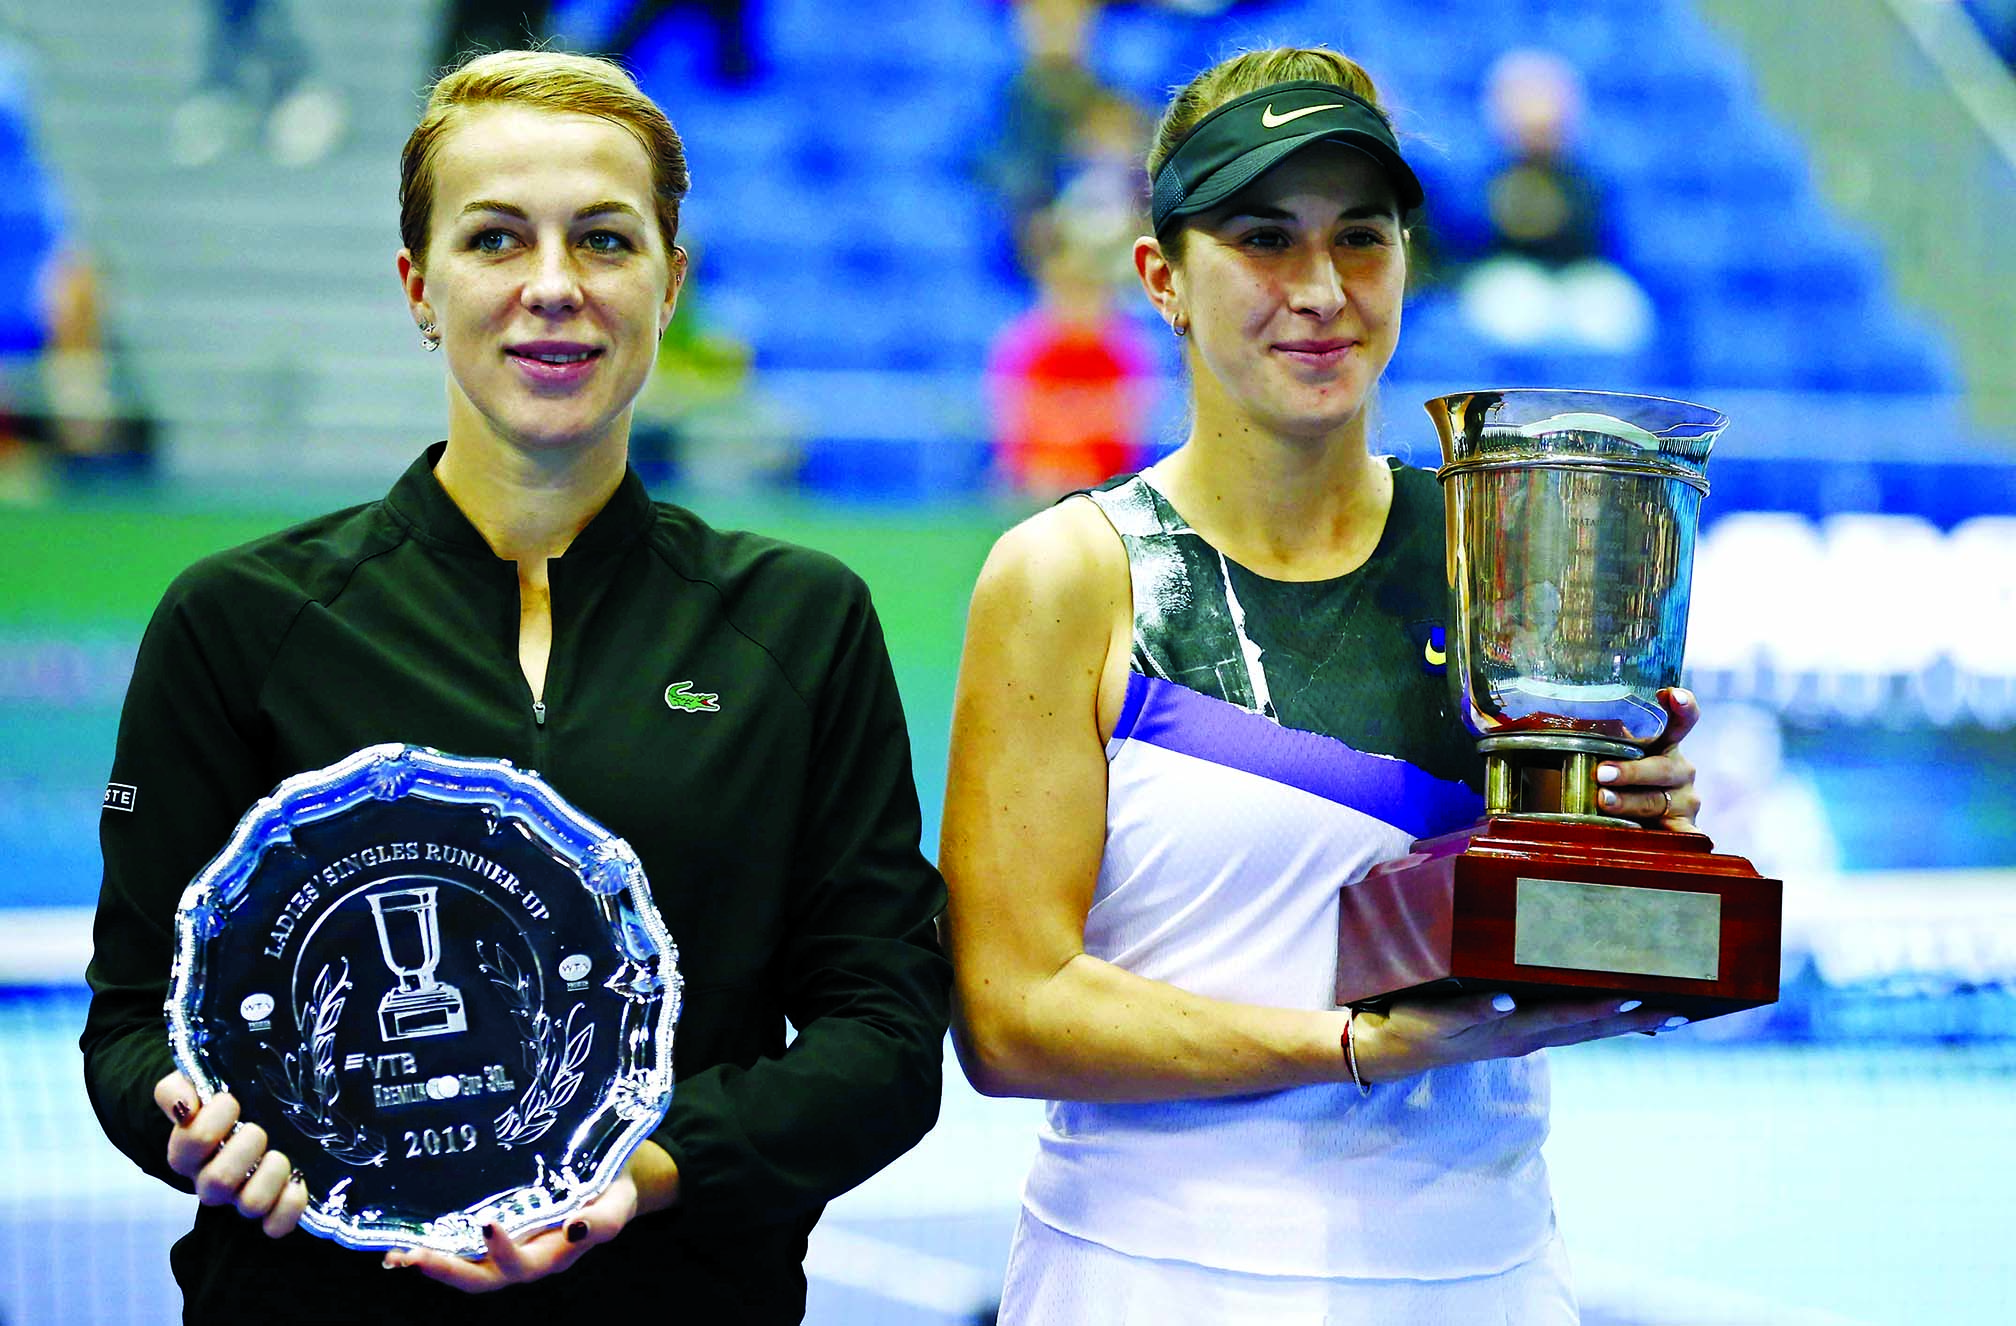 Belinda Bencic of Switzerland, first place (right) and Anastasia Pavlyuchenkova of Russia, second place hold their trophies after the final match of the Kremlin Cup tennis tournament in Moscow, Russia on Sunday.